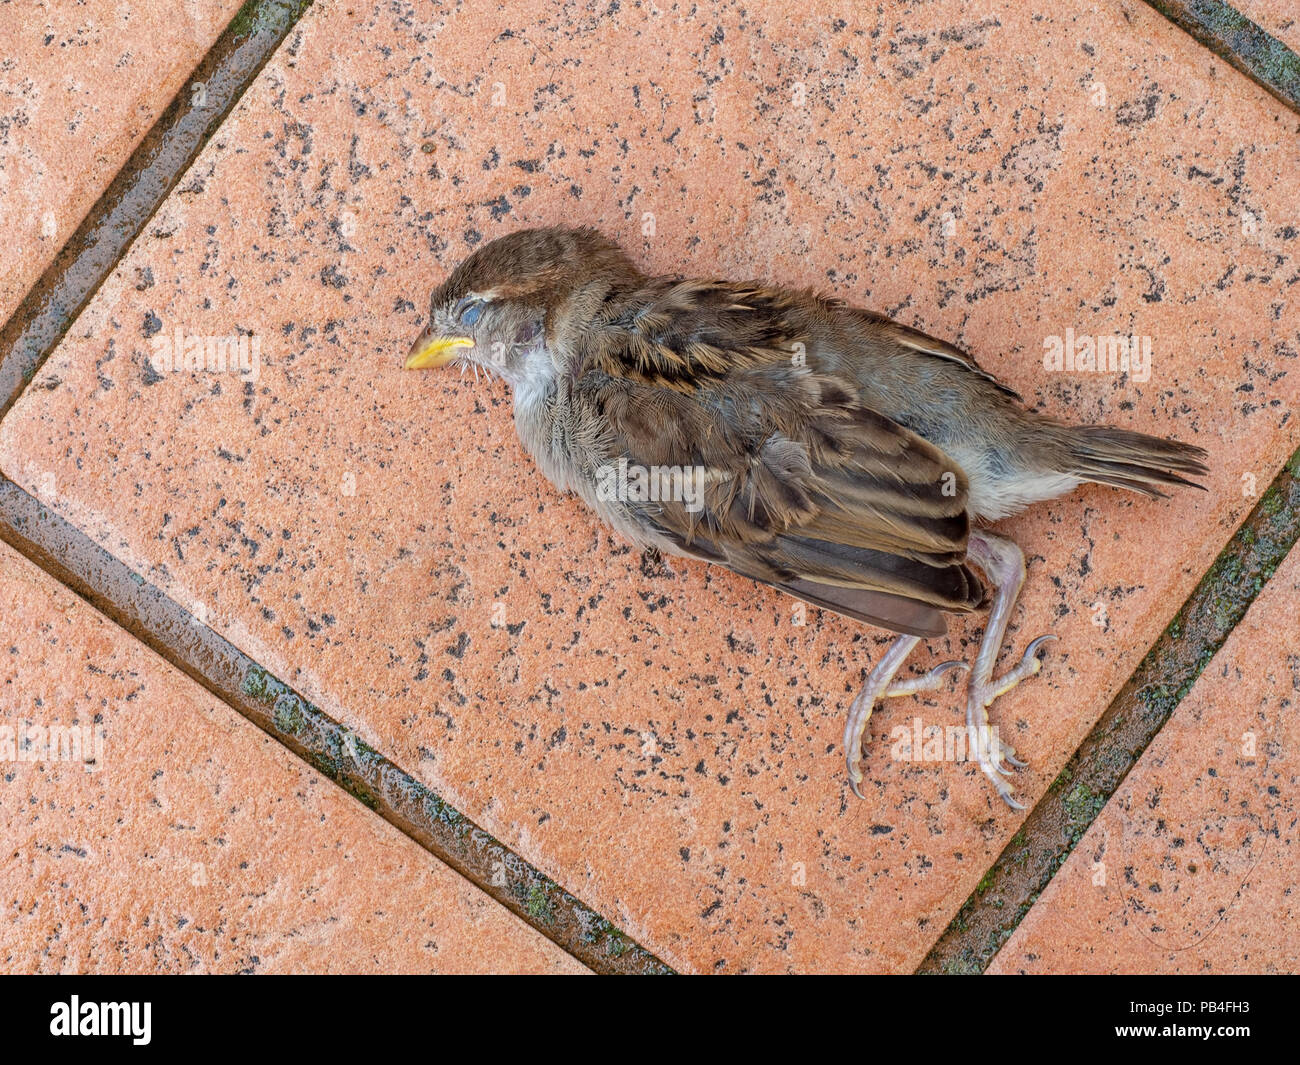 Dead young fledgeling sparrow, a gift from my pet cat. Killed and left on my patio. - Stock Image